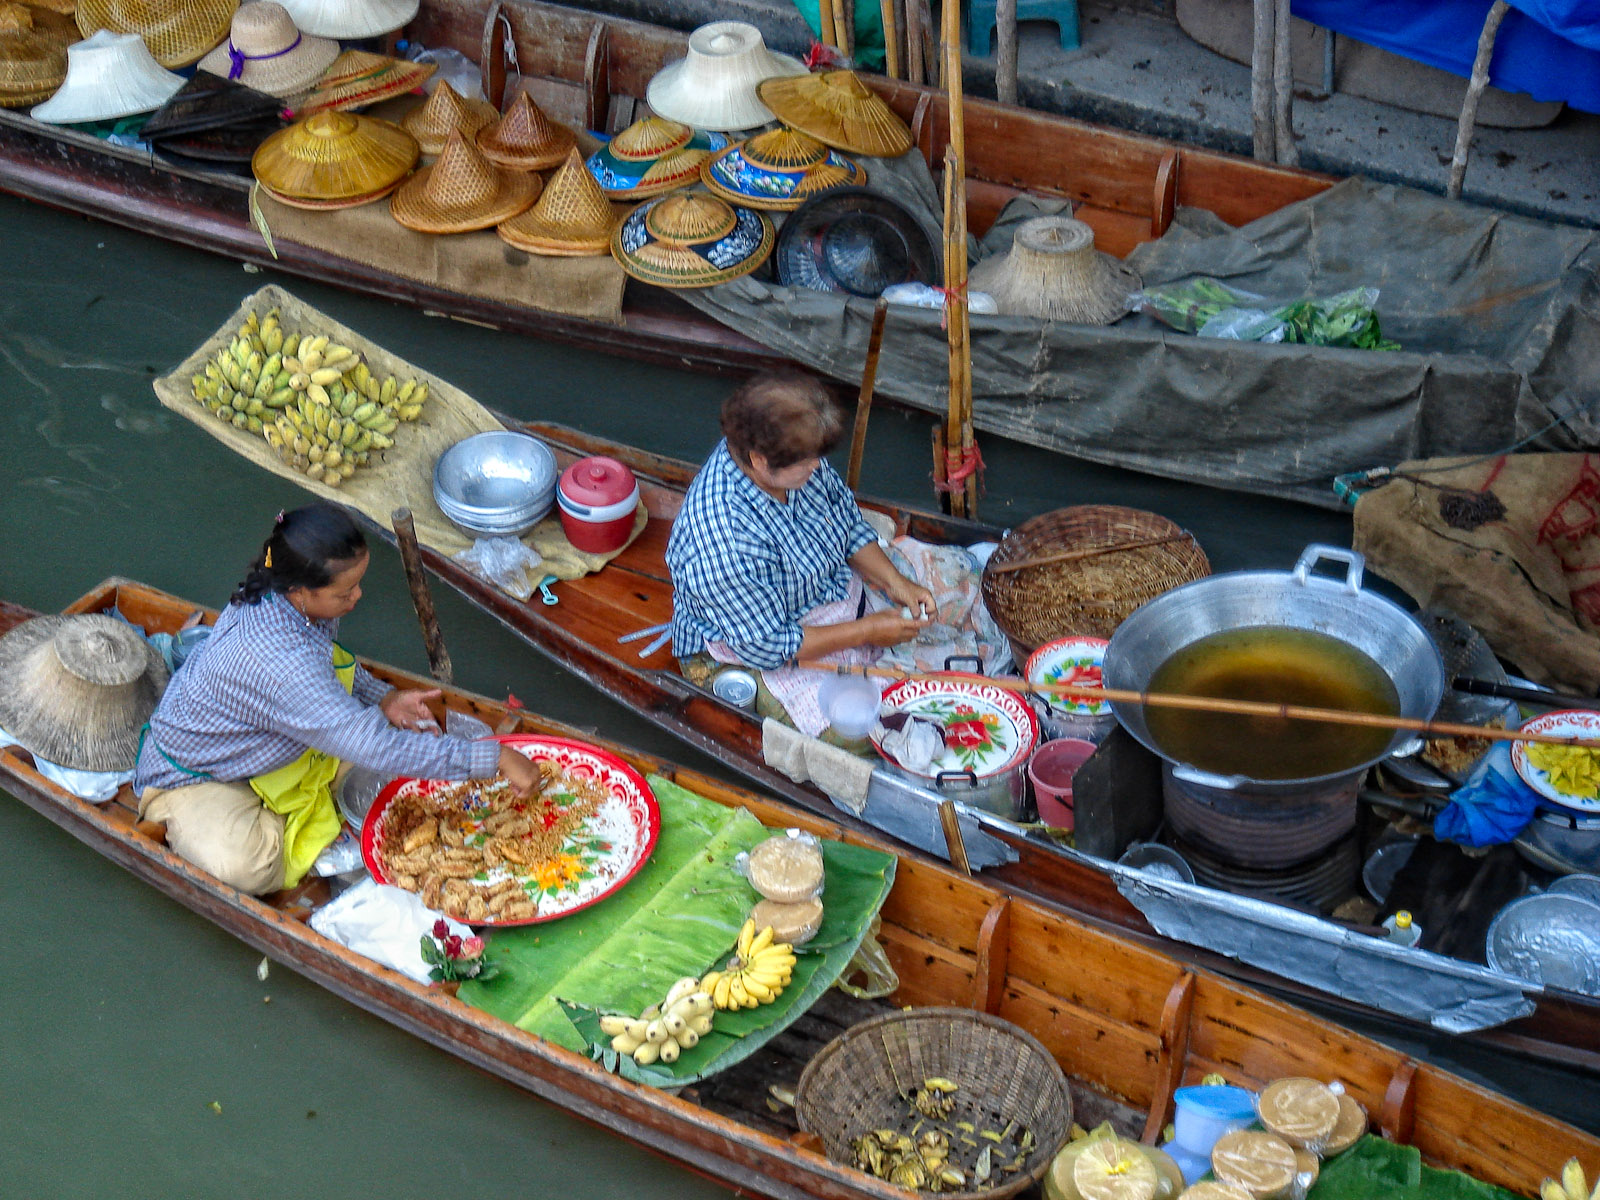 Women prepare food for sale at floating market, Thailand